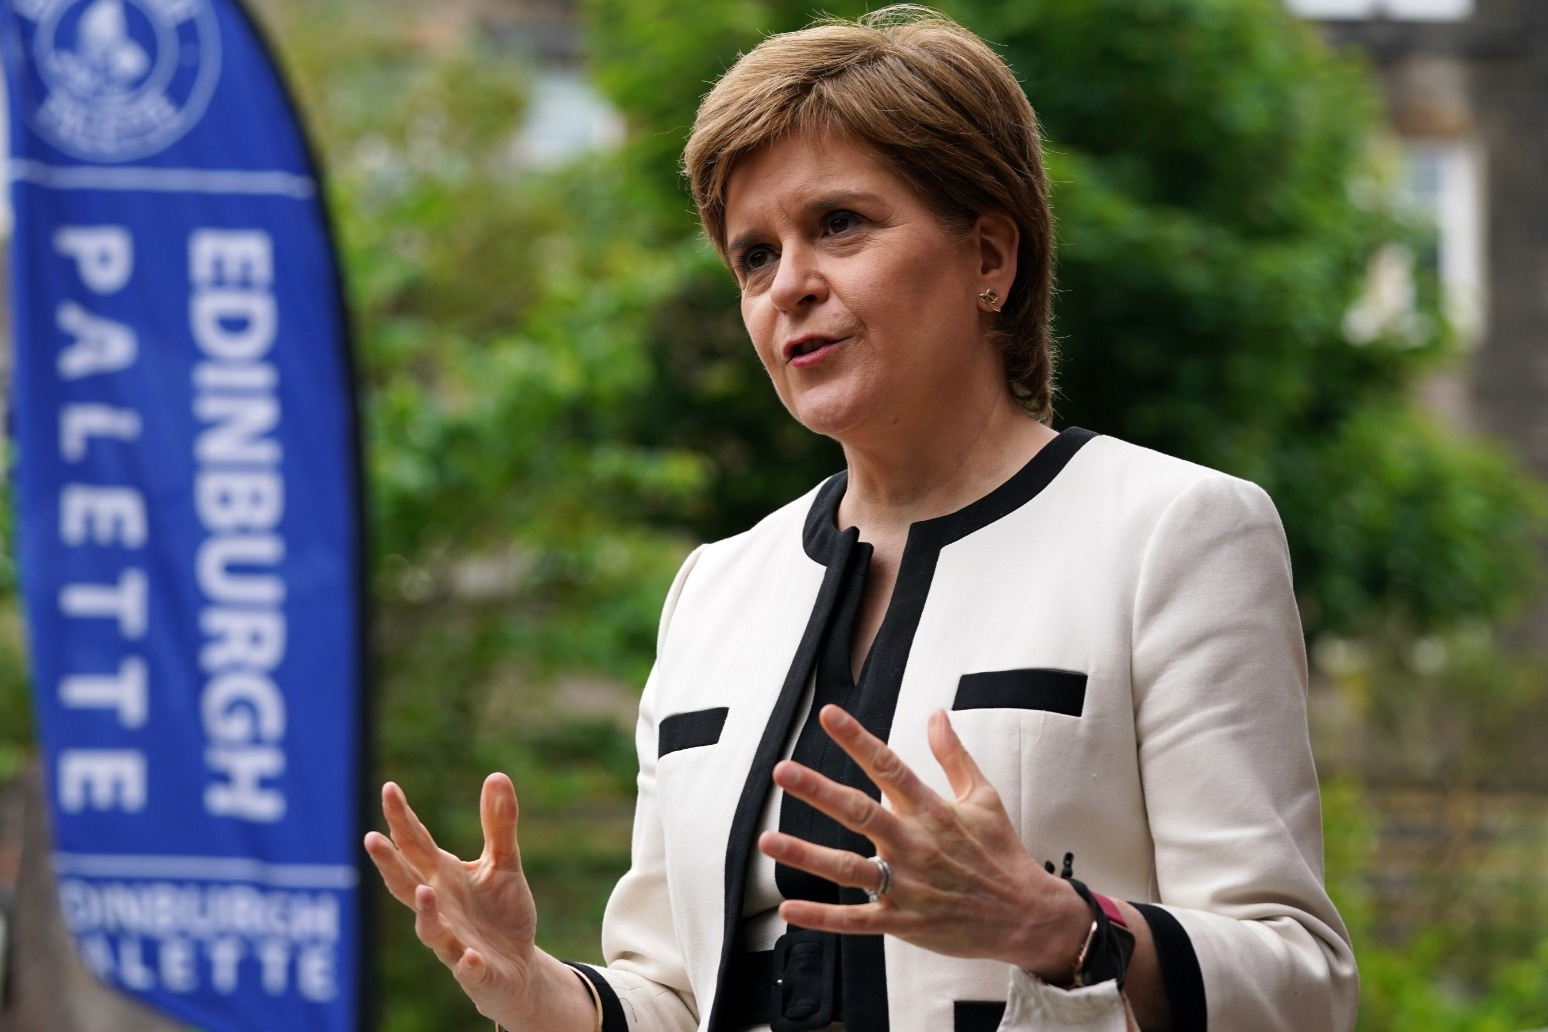 Sturgeon to announce whether coronavirus restrictions will be eased